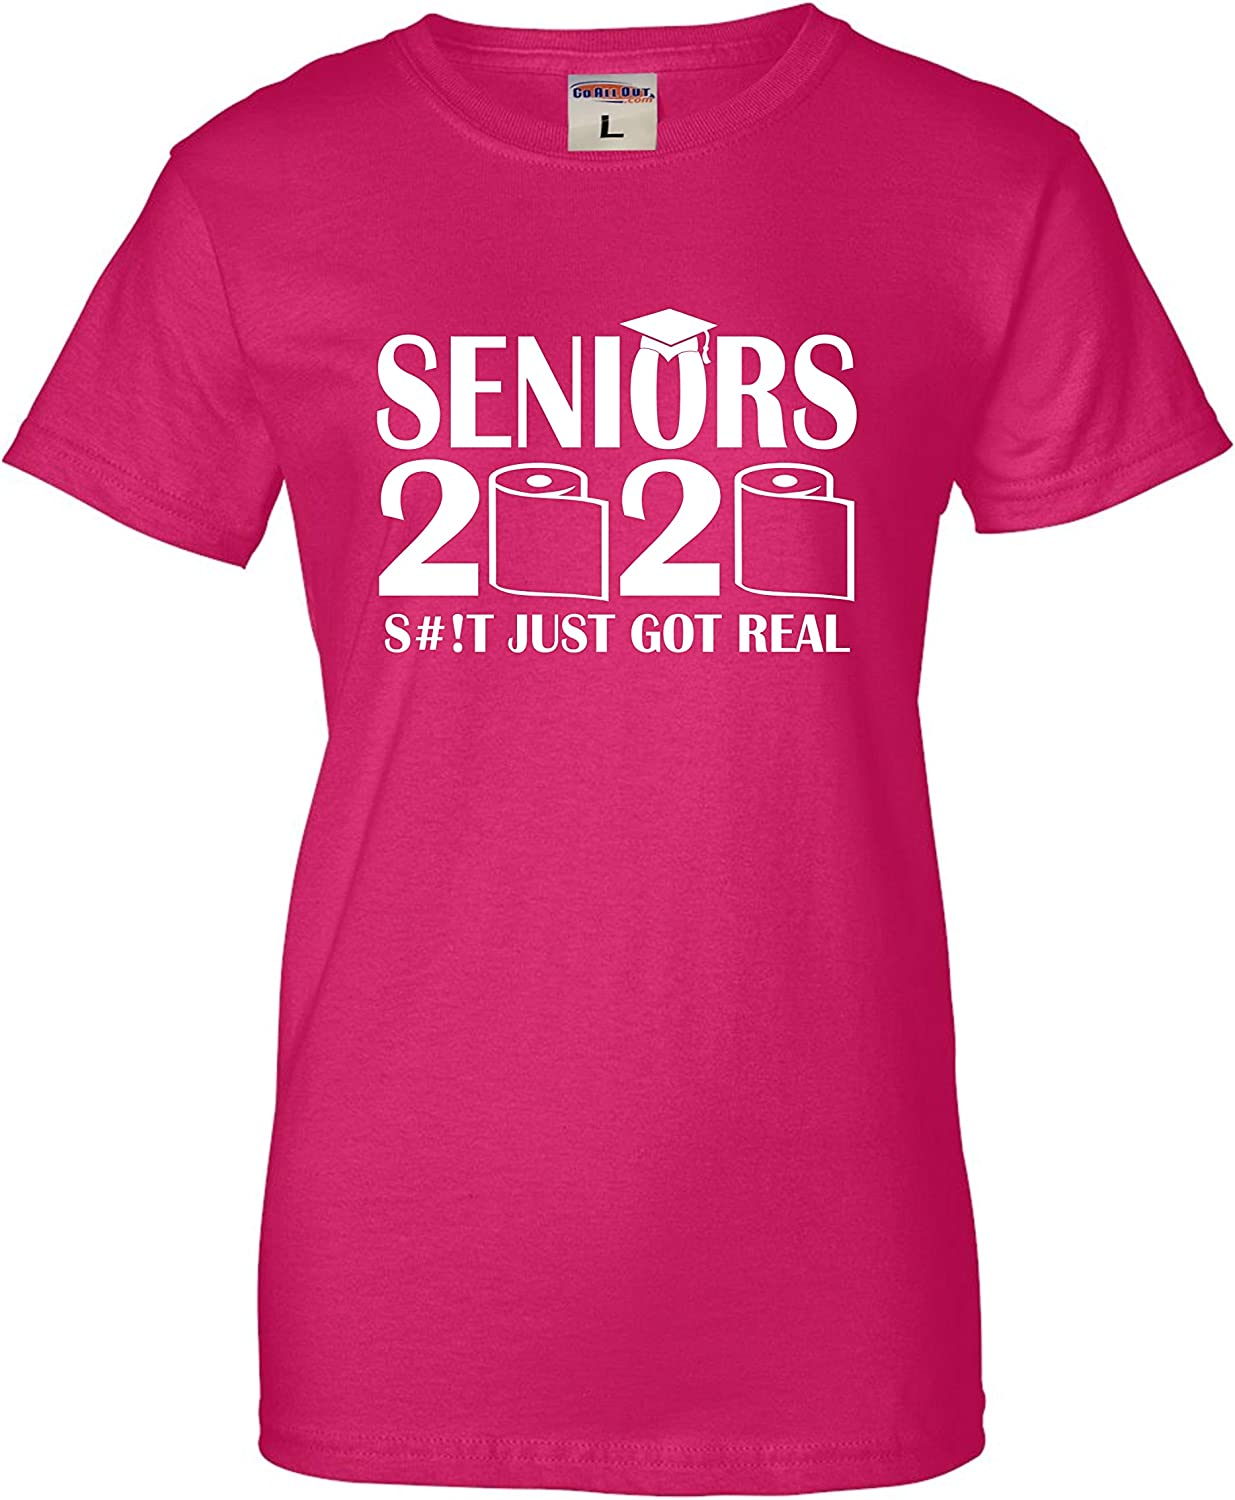 Go All Out Womens Seniors 2020 Funny Graduation S#!t Just Got Real T-Shirt